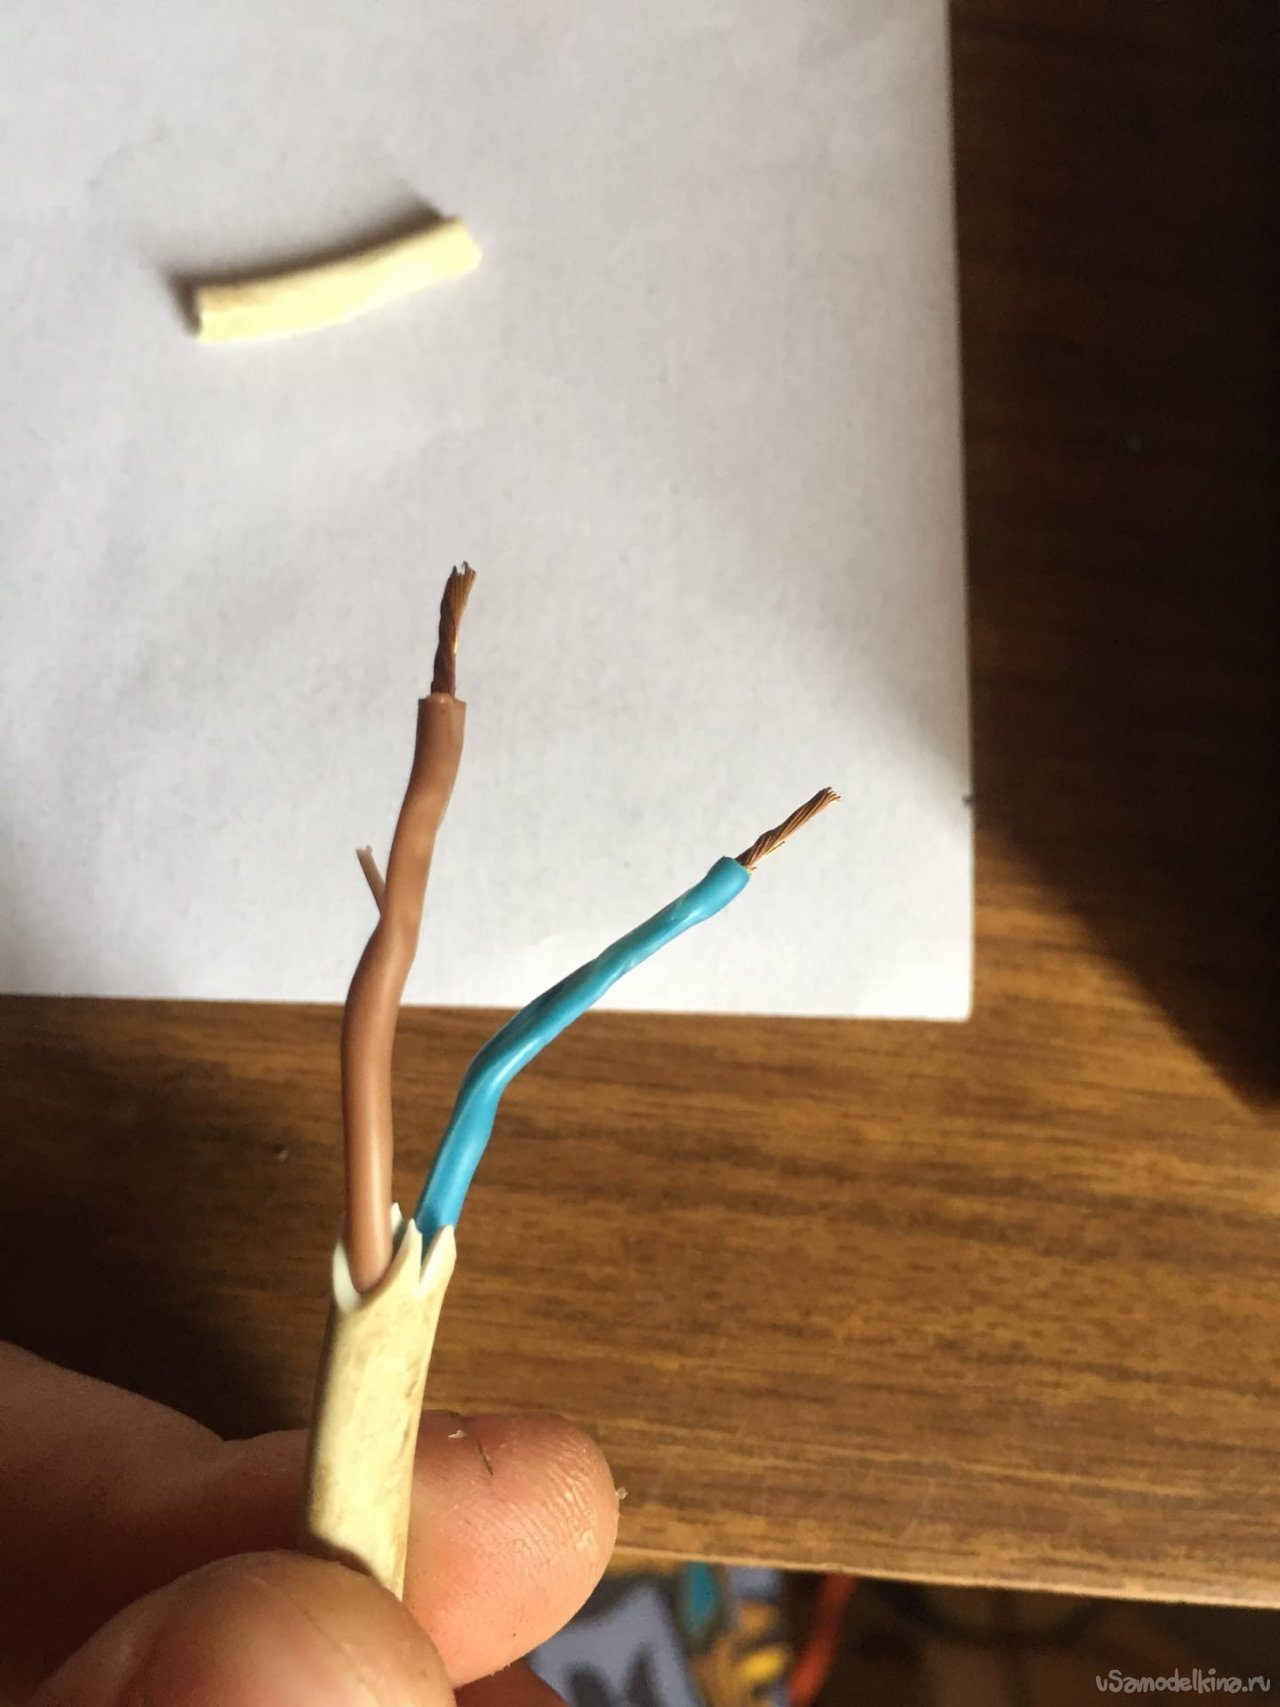 An attempt to convert a cordless screwdriver to a wire